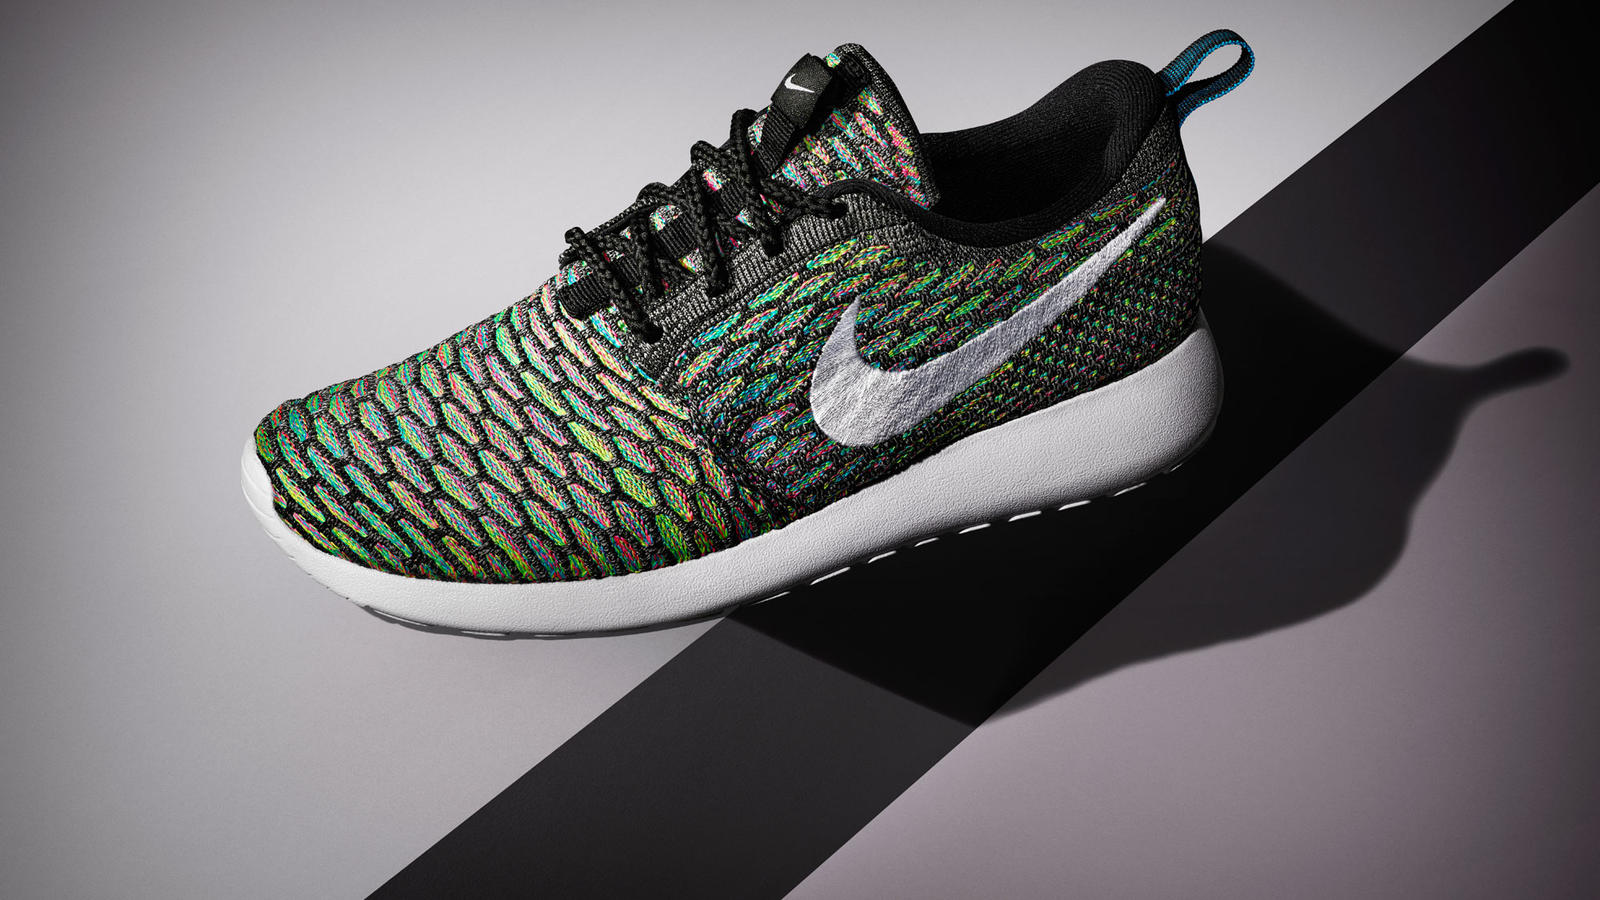 Sp15_NSW_Roshe_Flyknit_W_Grey_White_06_original_porto (17)